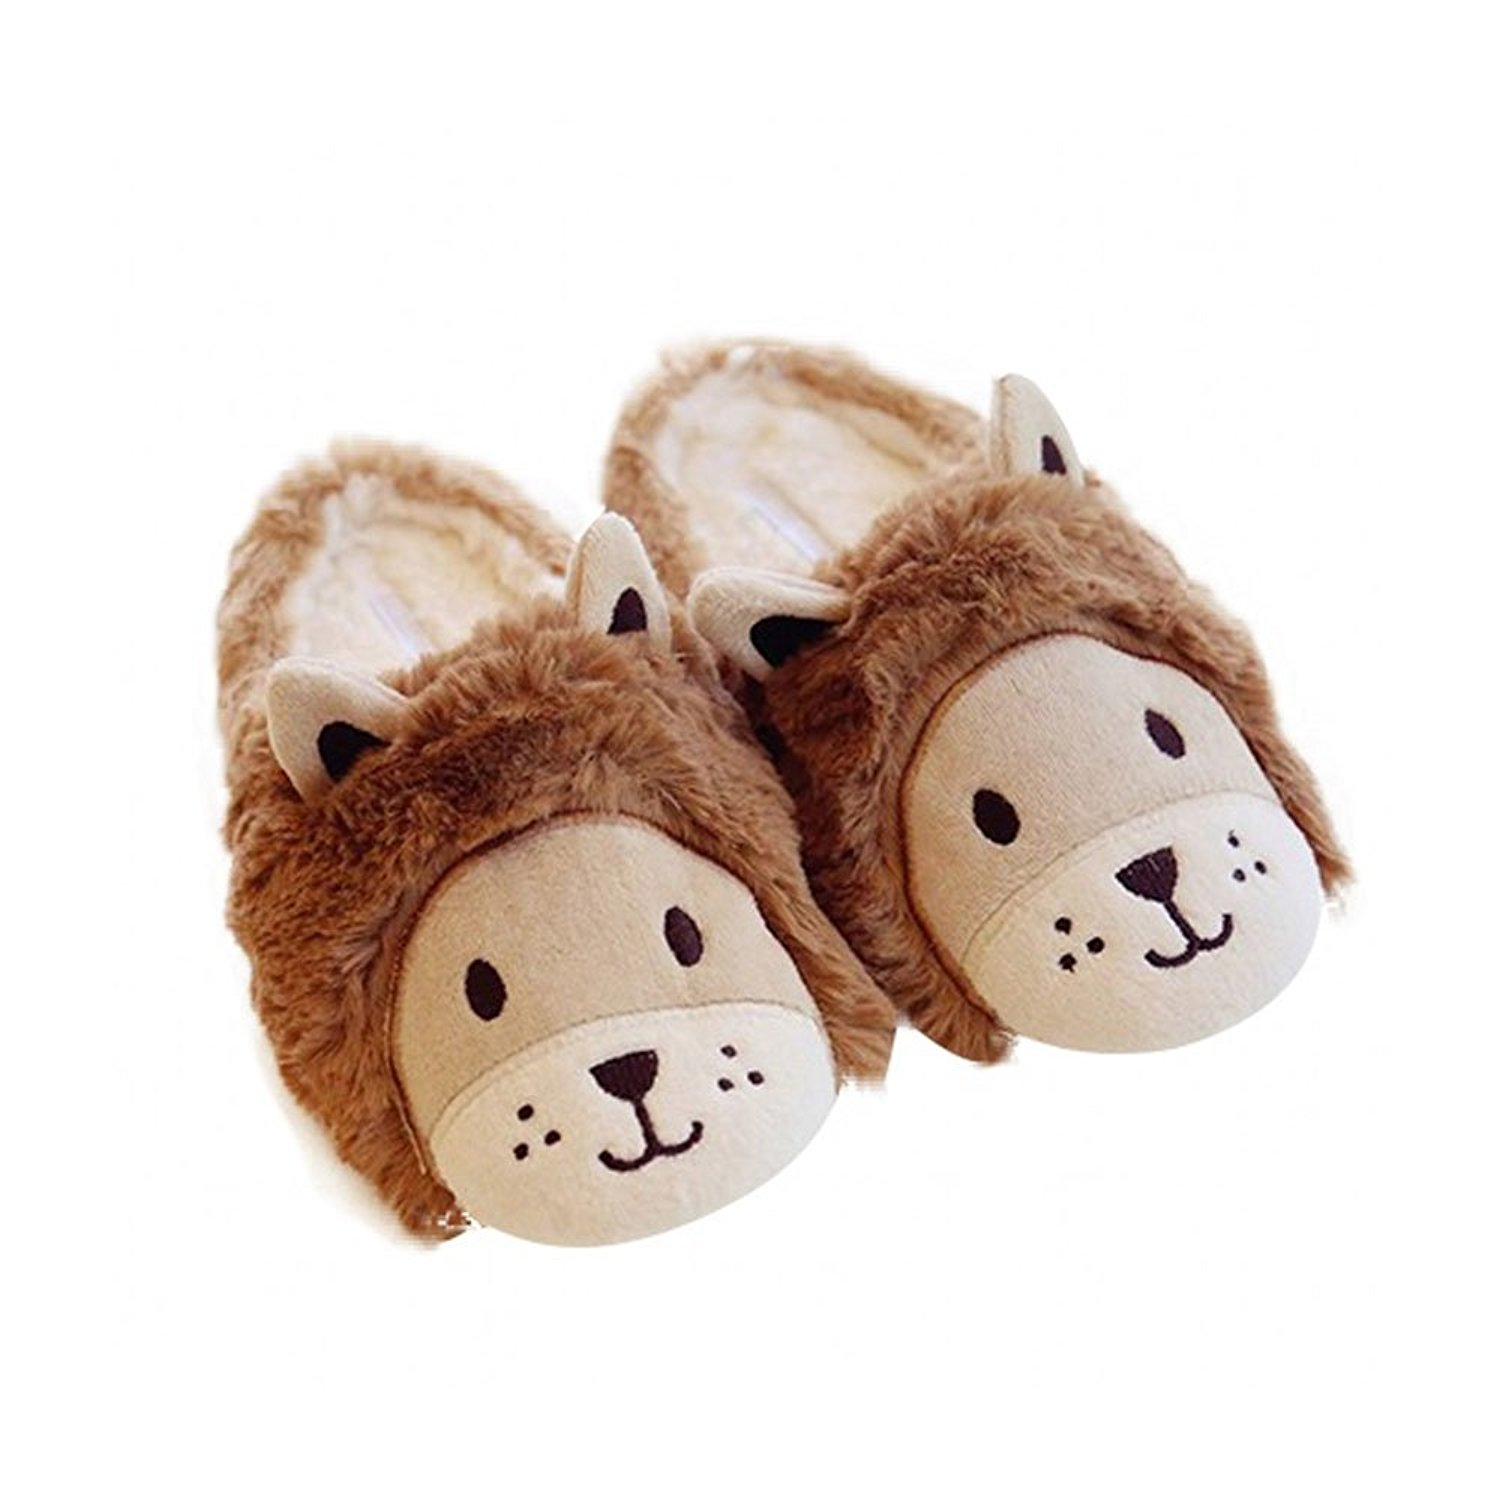 ORGEN HOME Cartoon Smile Lion 3D Animal Creative Slippers Cute Fuzzy Home Plush Slippers Cozy Fun Plush Indoor Shoe Soft Winter Clog For Women Warm Anti-Slip House Slippers Memory Foam Sole